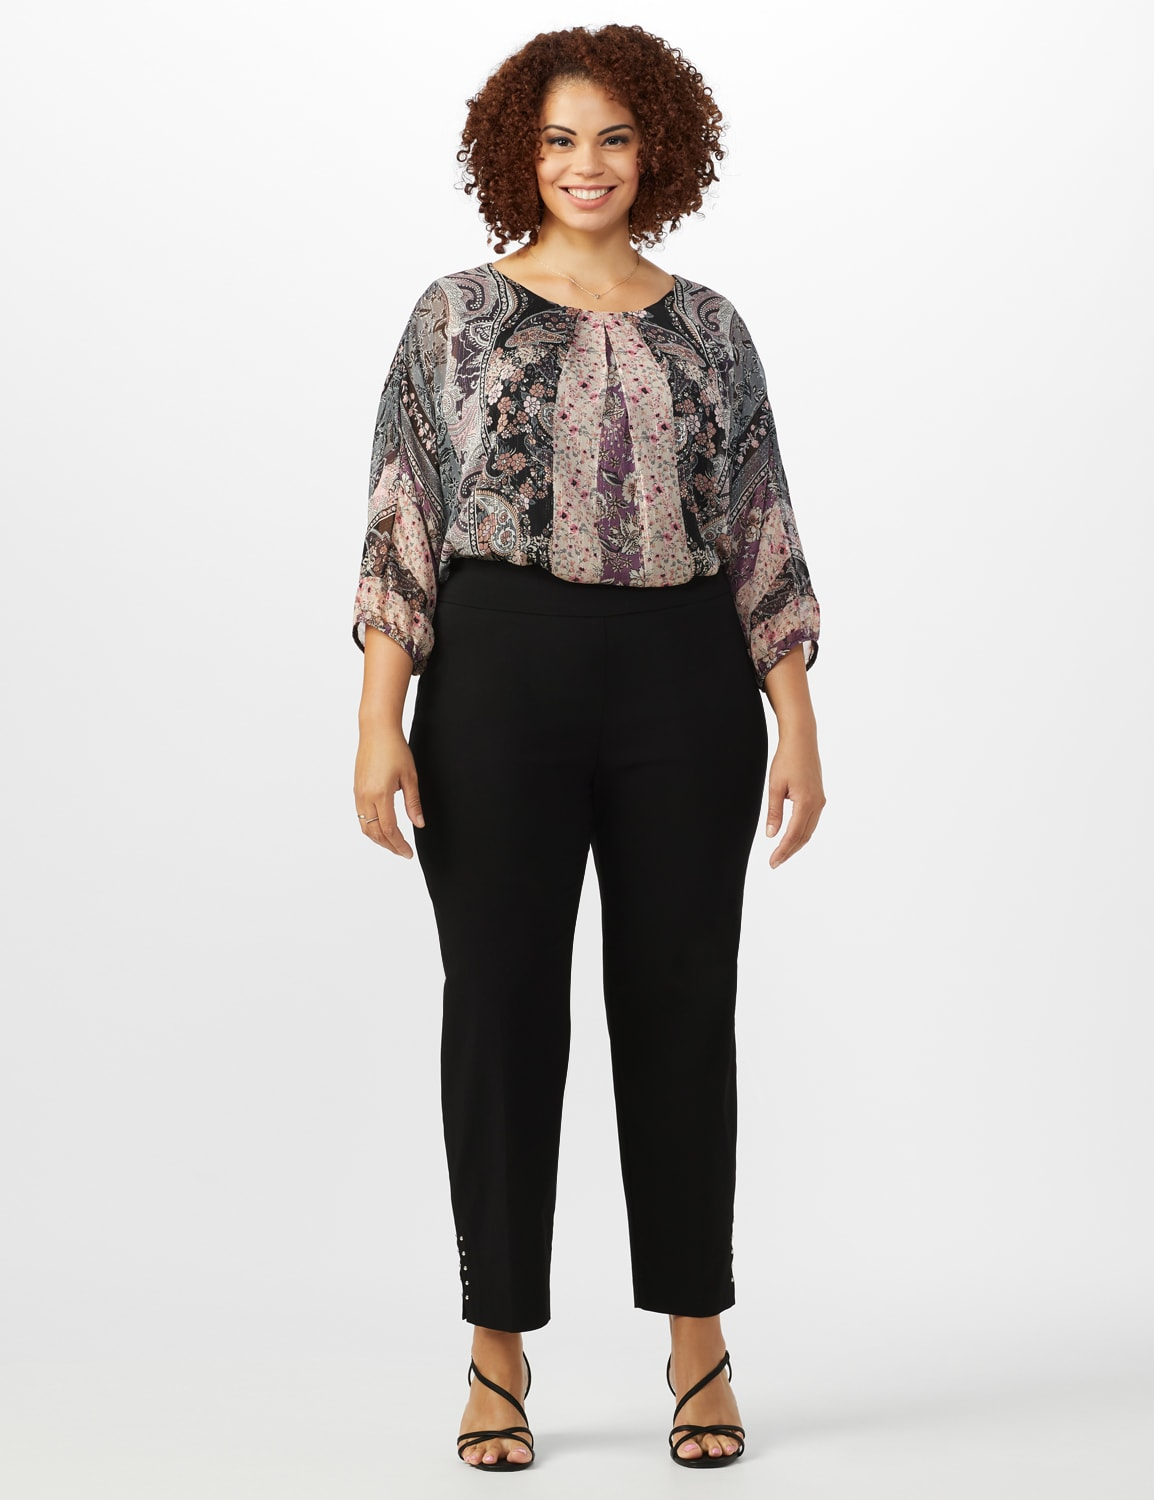 Roz & Ali Solid Superstretch Tummy Panel Pull On Ankle Pants With Rivet Trim Bottom - Plus - Black - Front